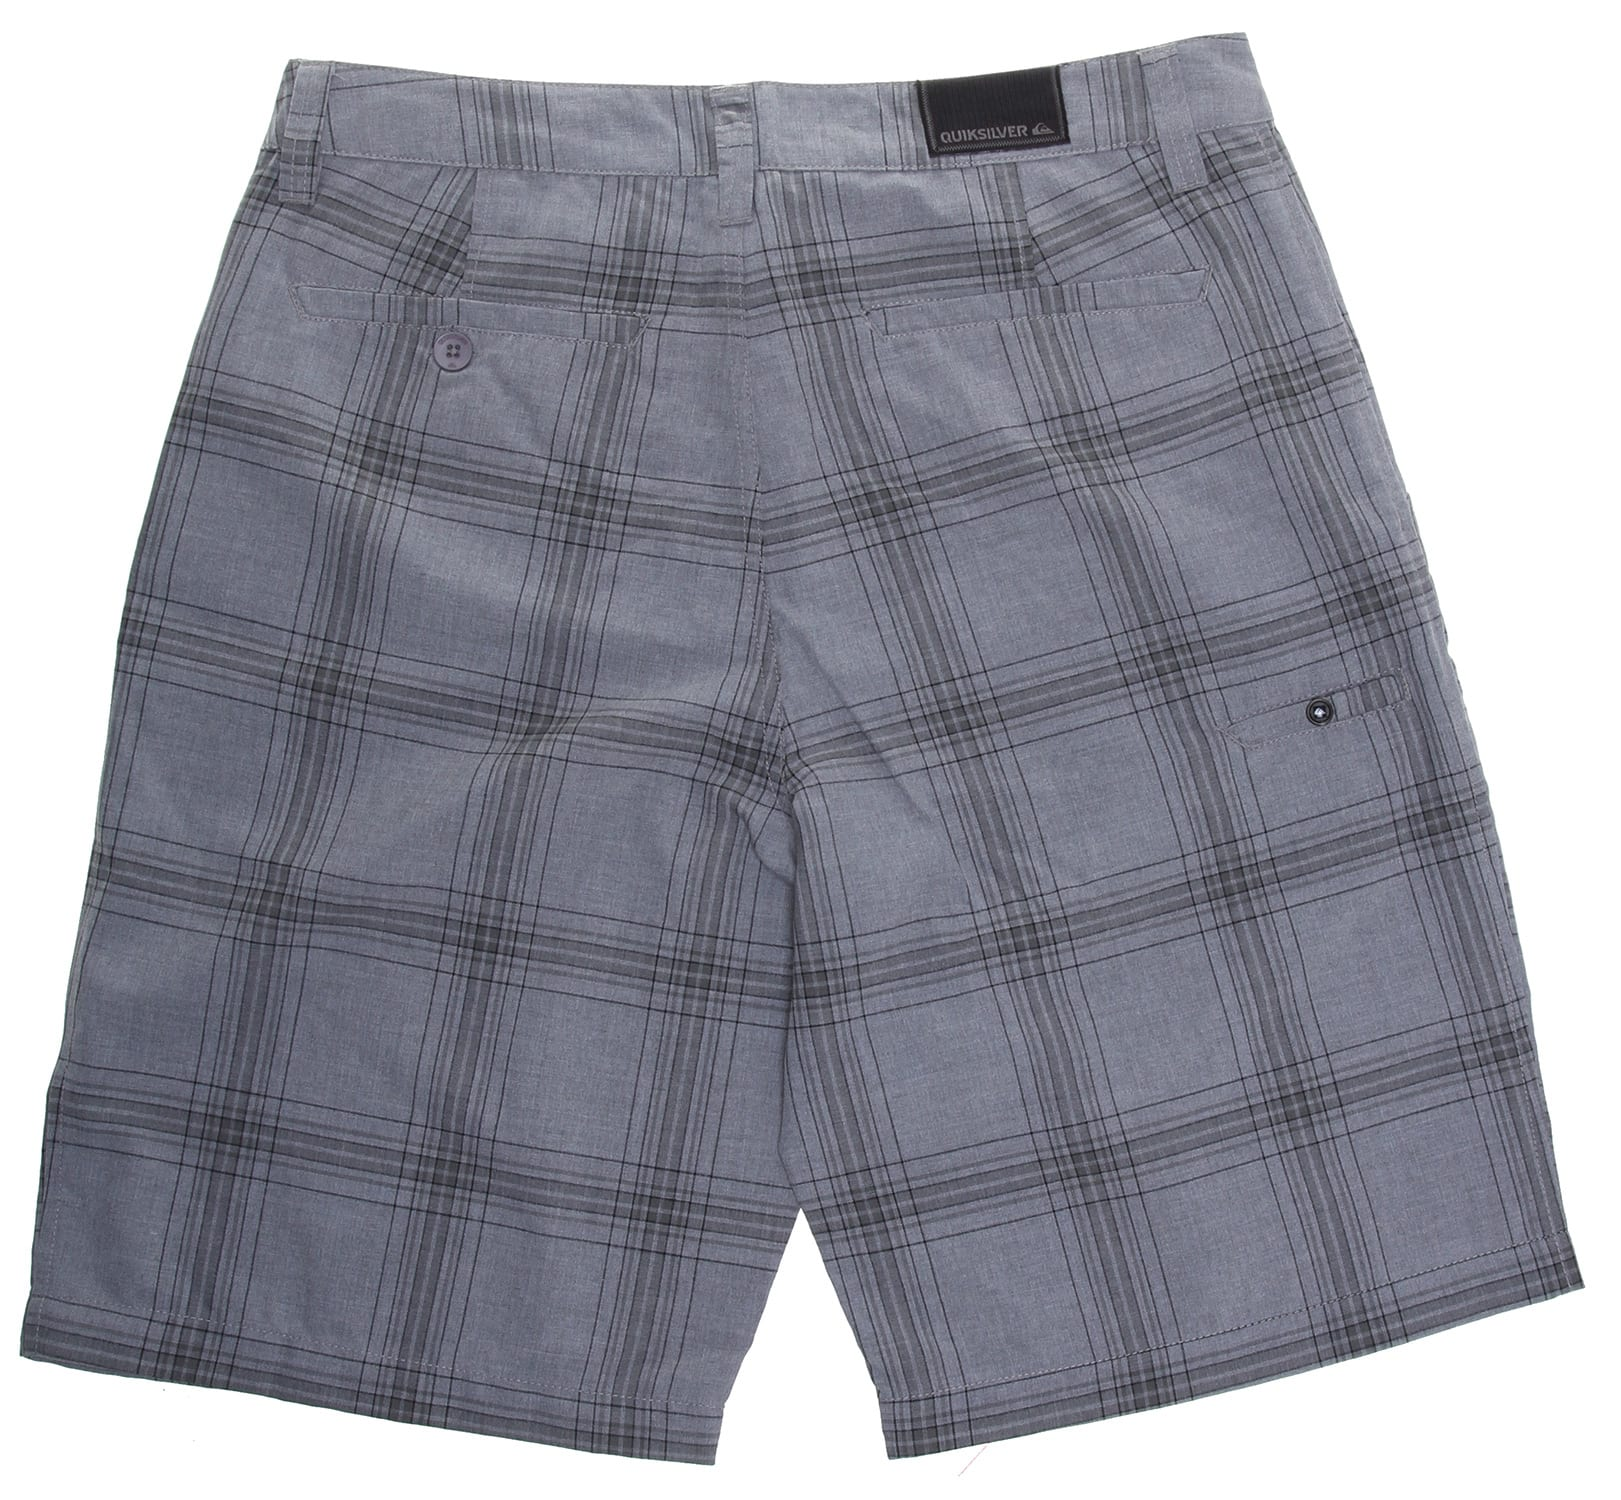 Shorts for Men - Quiksilver | BuckleNew Arrivals· Easy Returns· Guest Services· Bill Pay.